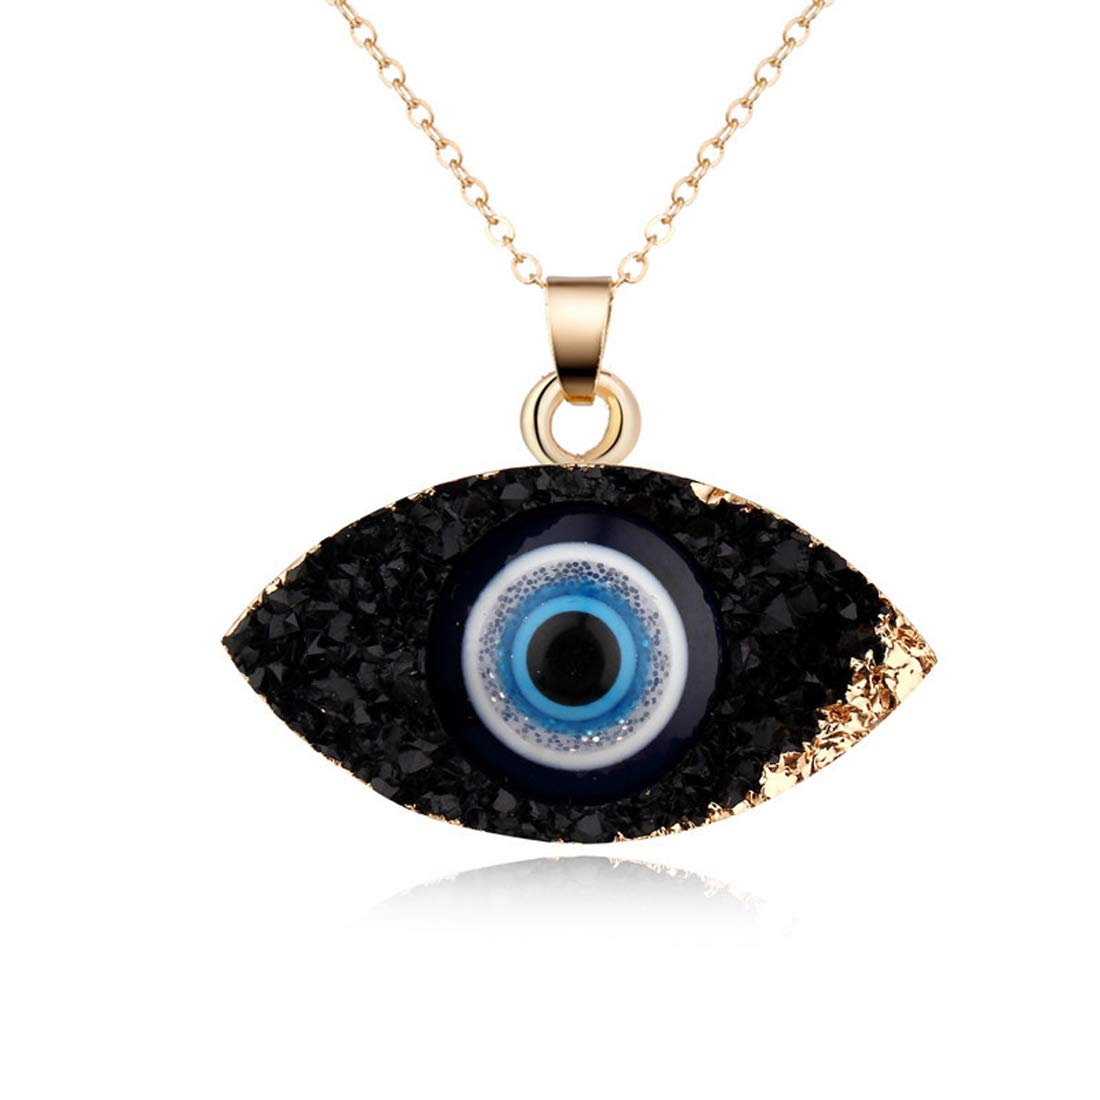 HUNO Classic Turkish Evil Eye Necklace Imitated Druzy Pendant Gold Plated Faith Protection Lucky Jewelry for Women and Girls Party Special Days